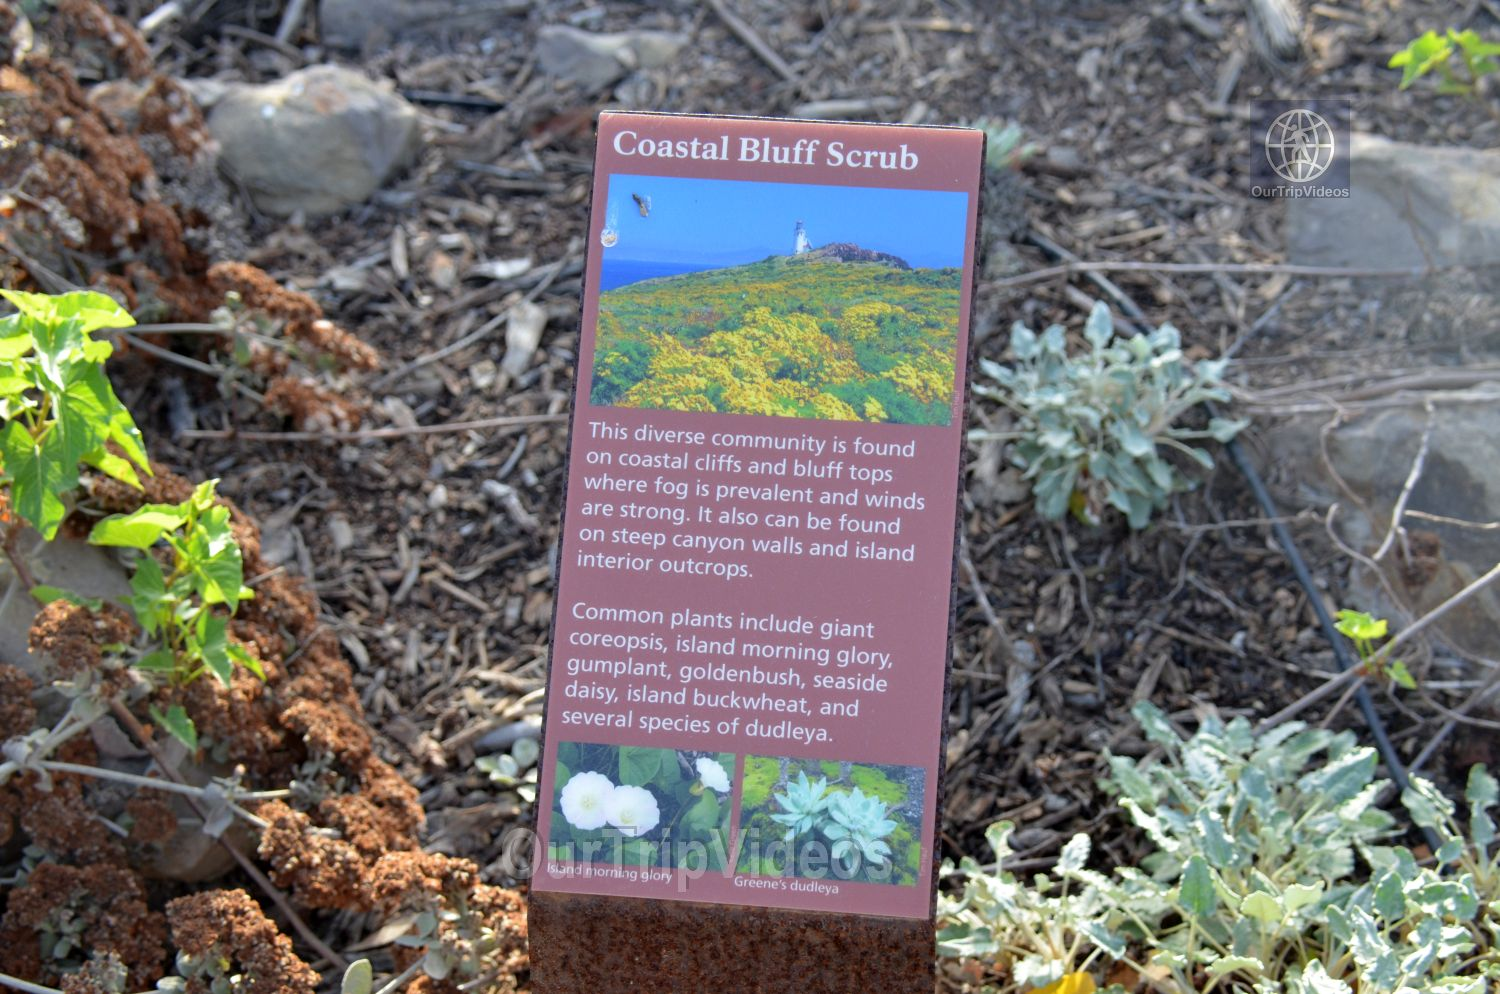 The Robert JL Visitor Center and Harbor cove beach, Ventura, CA, USA - Picture 16 of 25